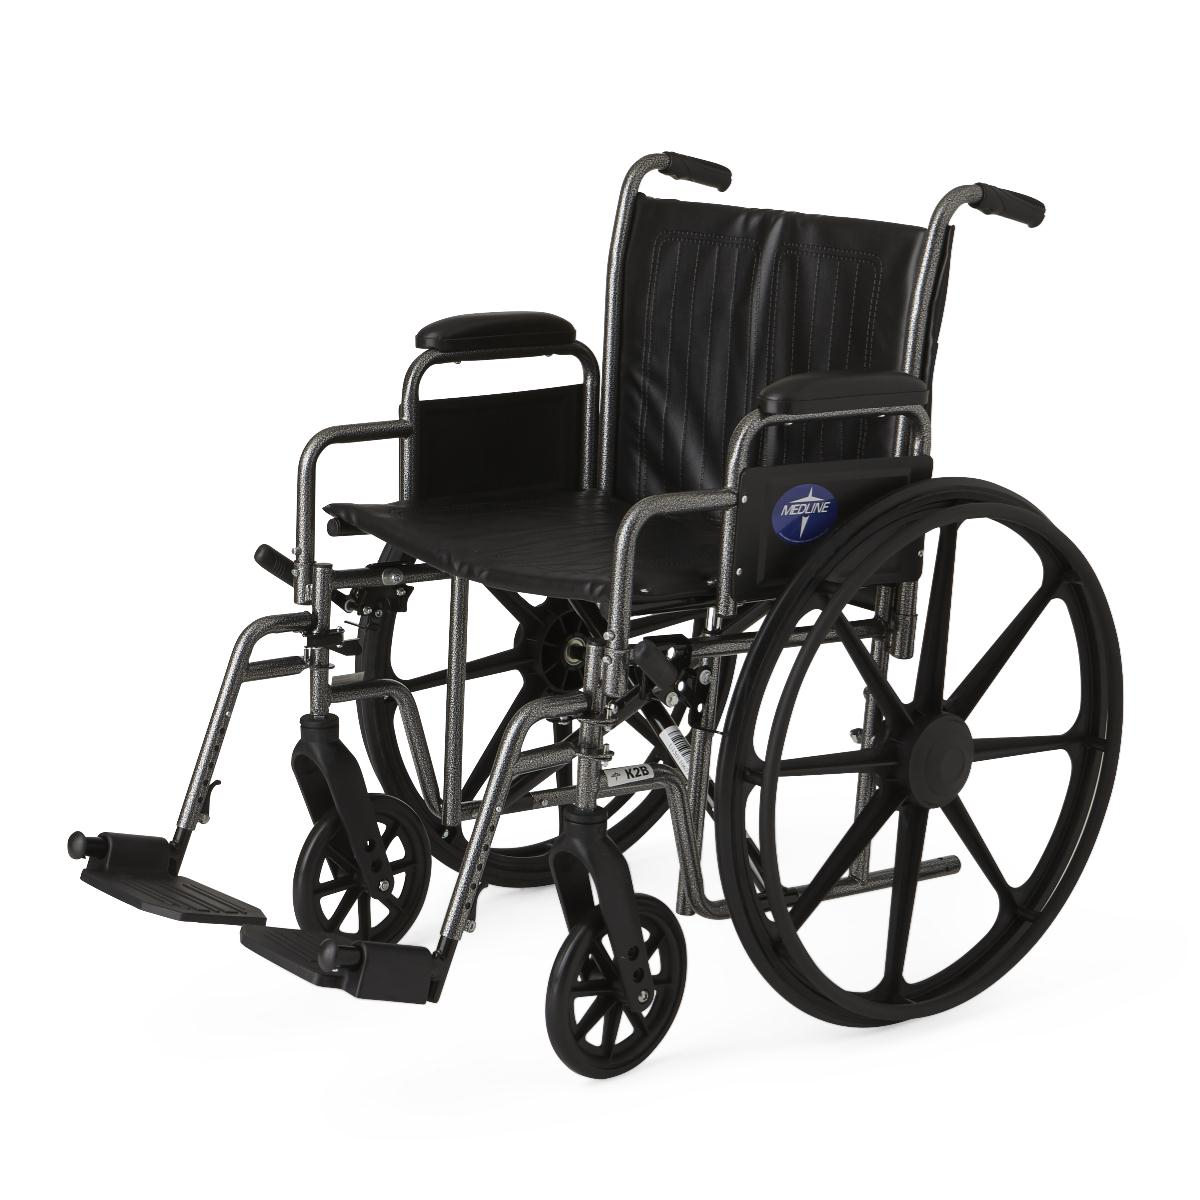 Medline K2 Basic Manual Wheelchair Parts